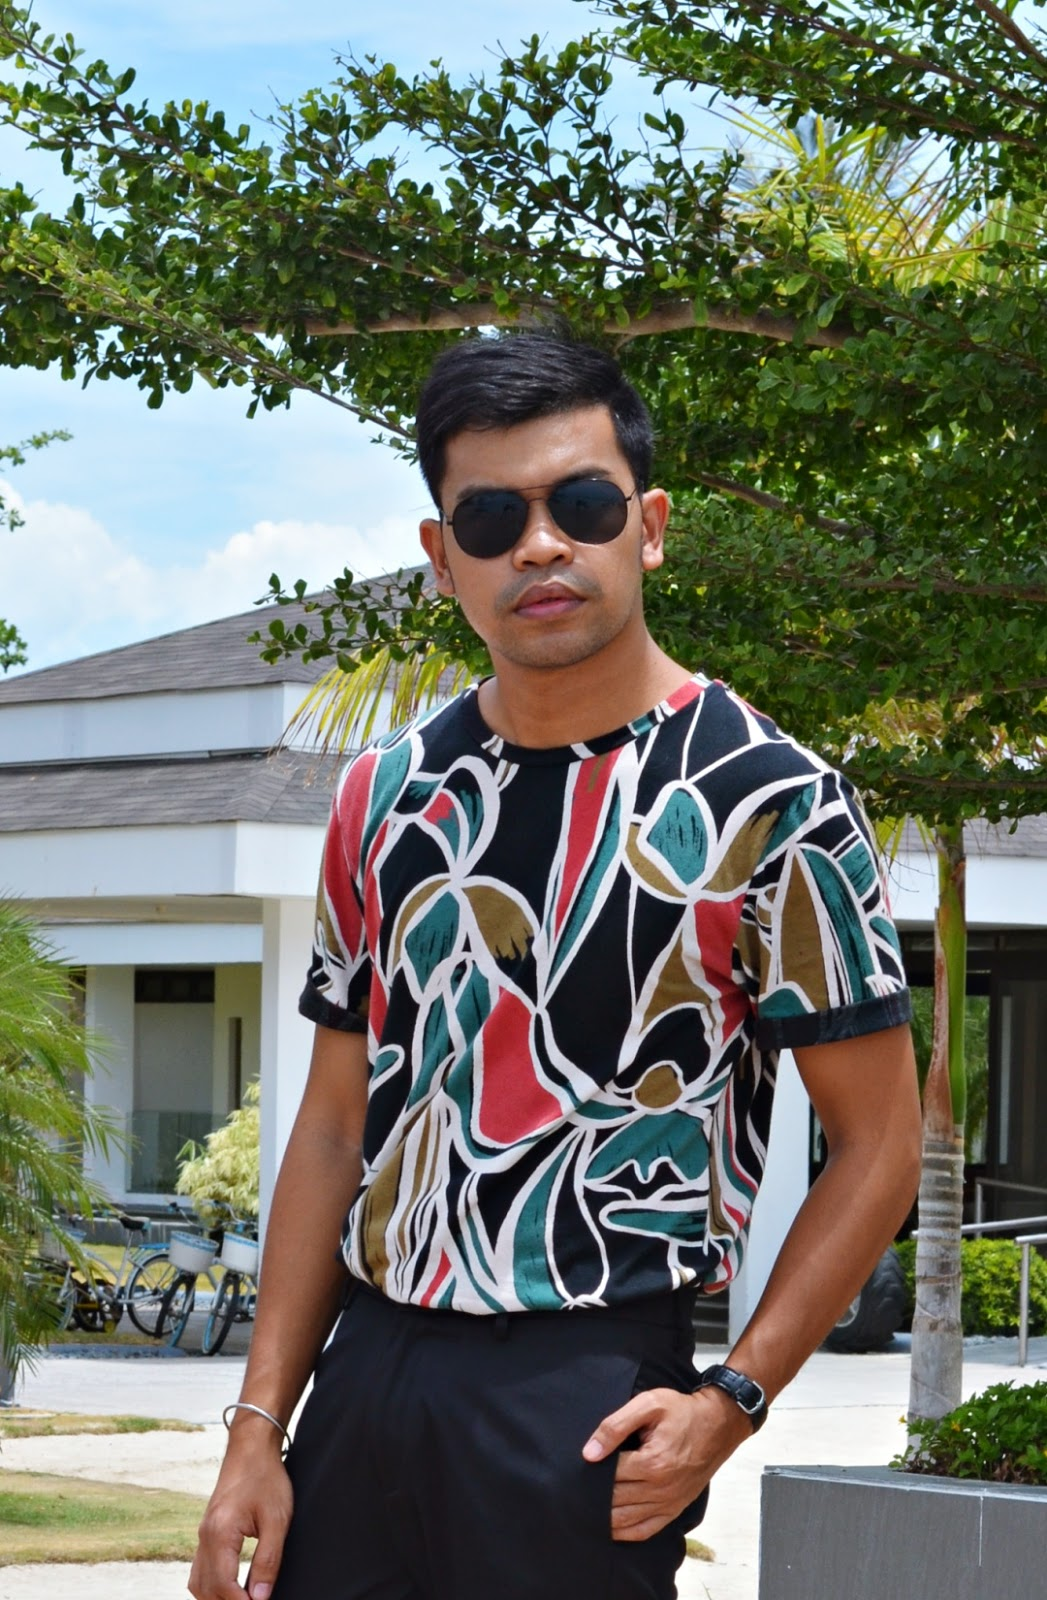 PRINTS-CEBU-FASHION-BLOGGER-MEN-ALMOSTABLOGGER.jpg